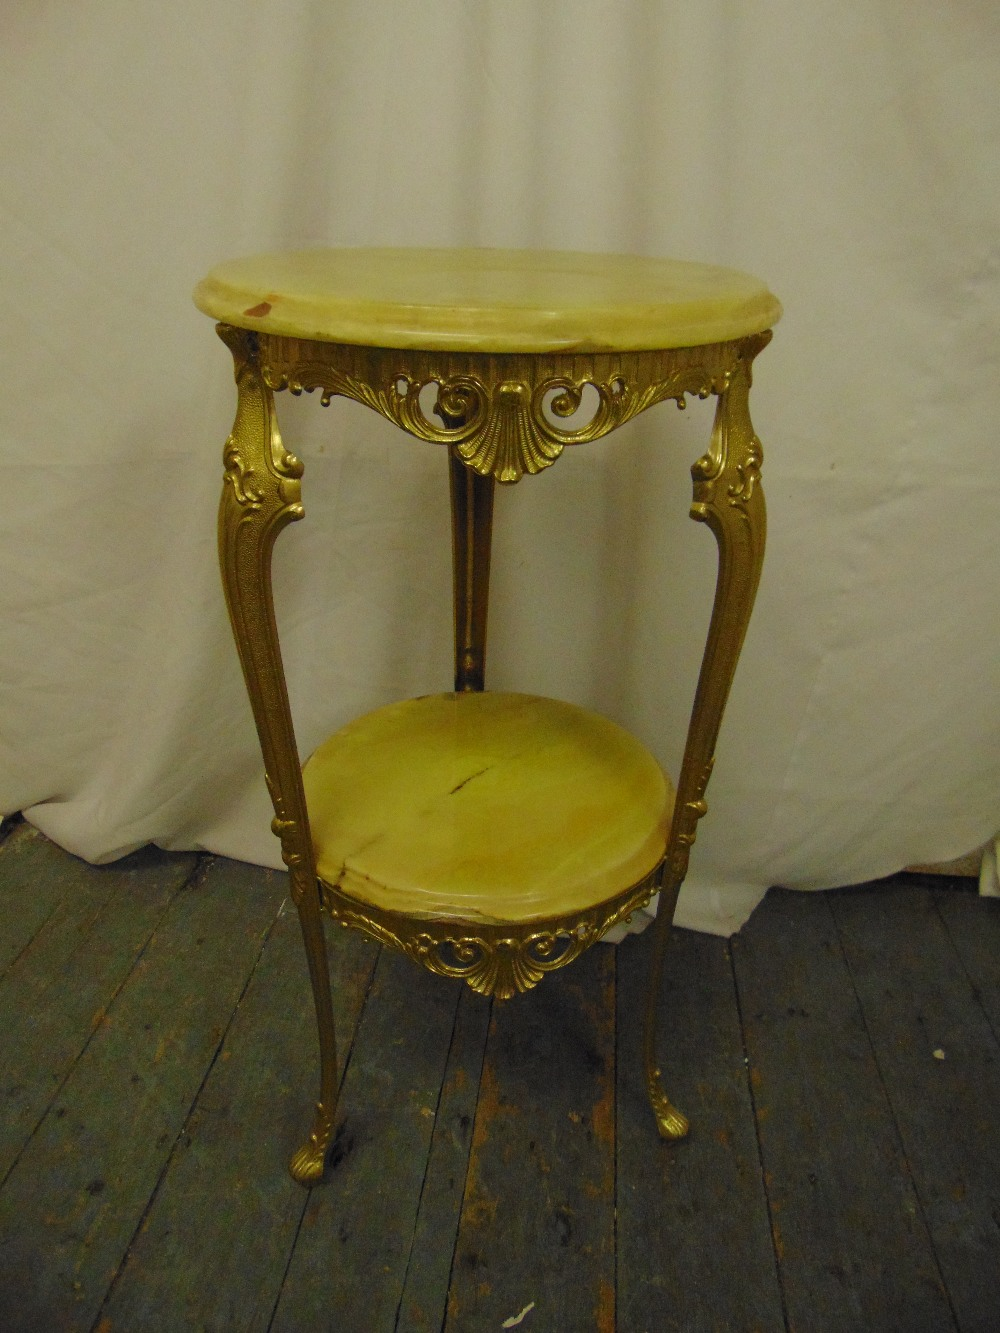 Lot 11 - An onyx and gilded metal side table, circular with scrolling supports